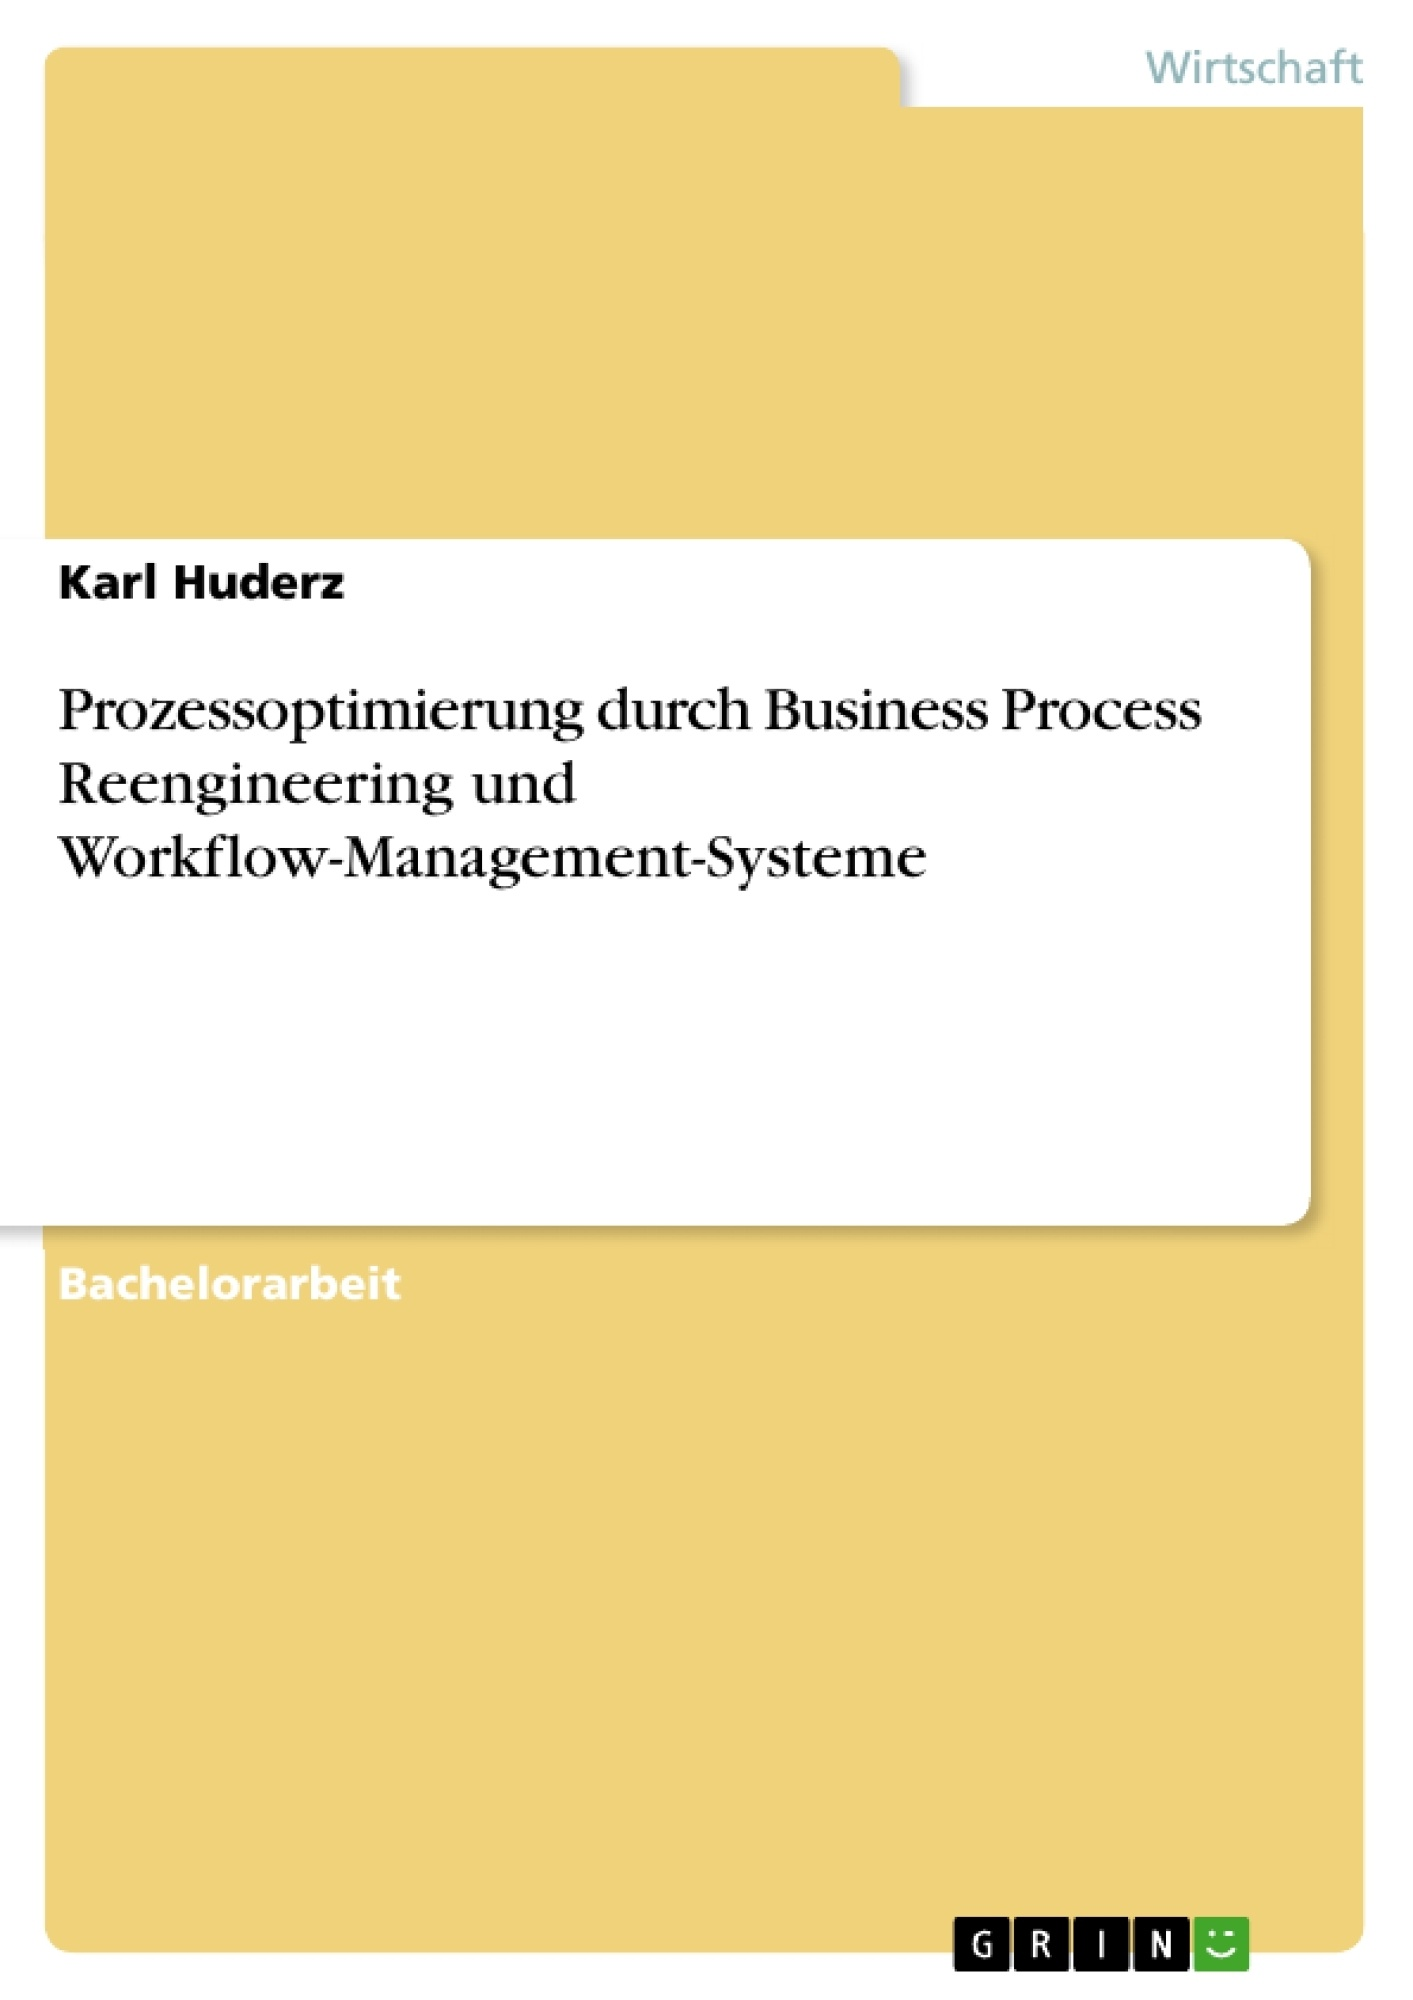 Bachelor thesis business process reengineering